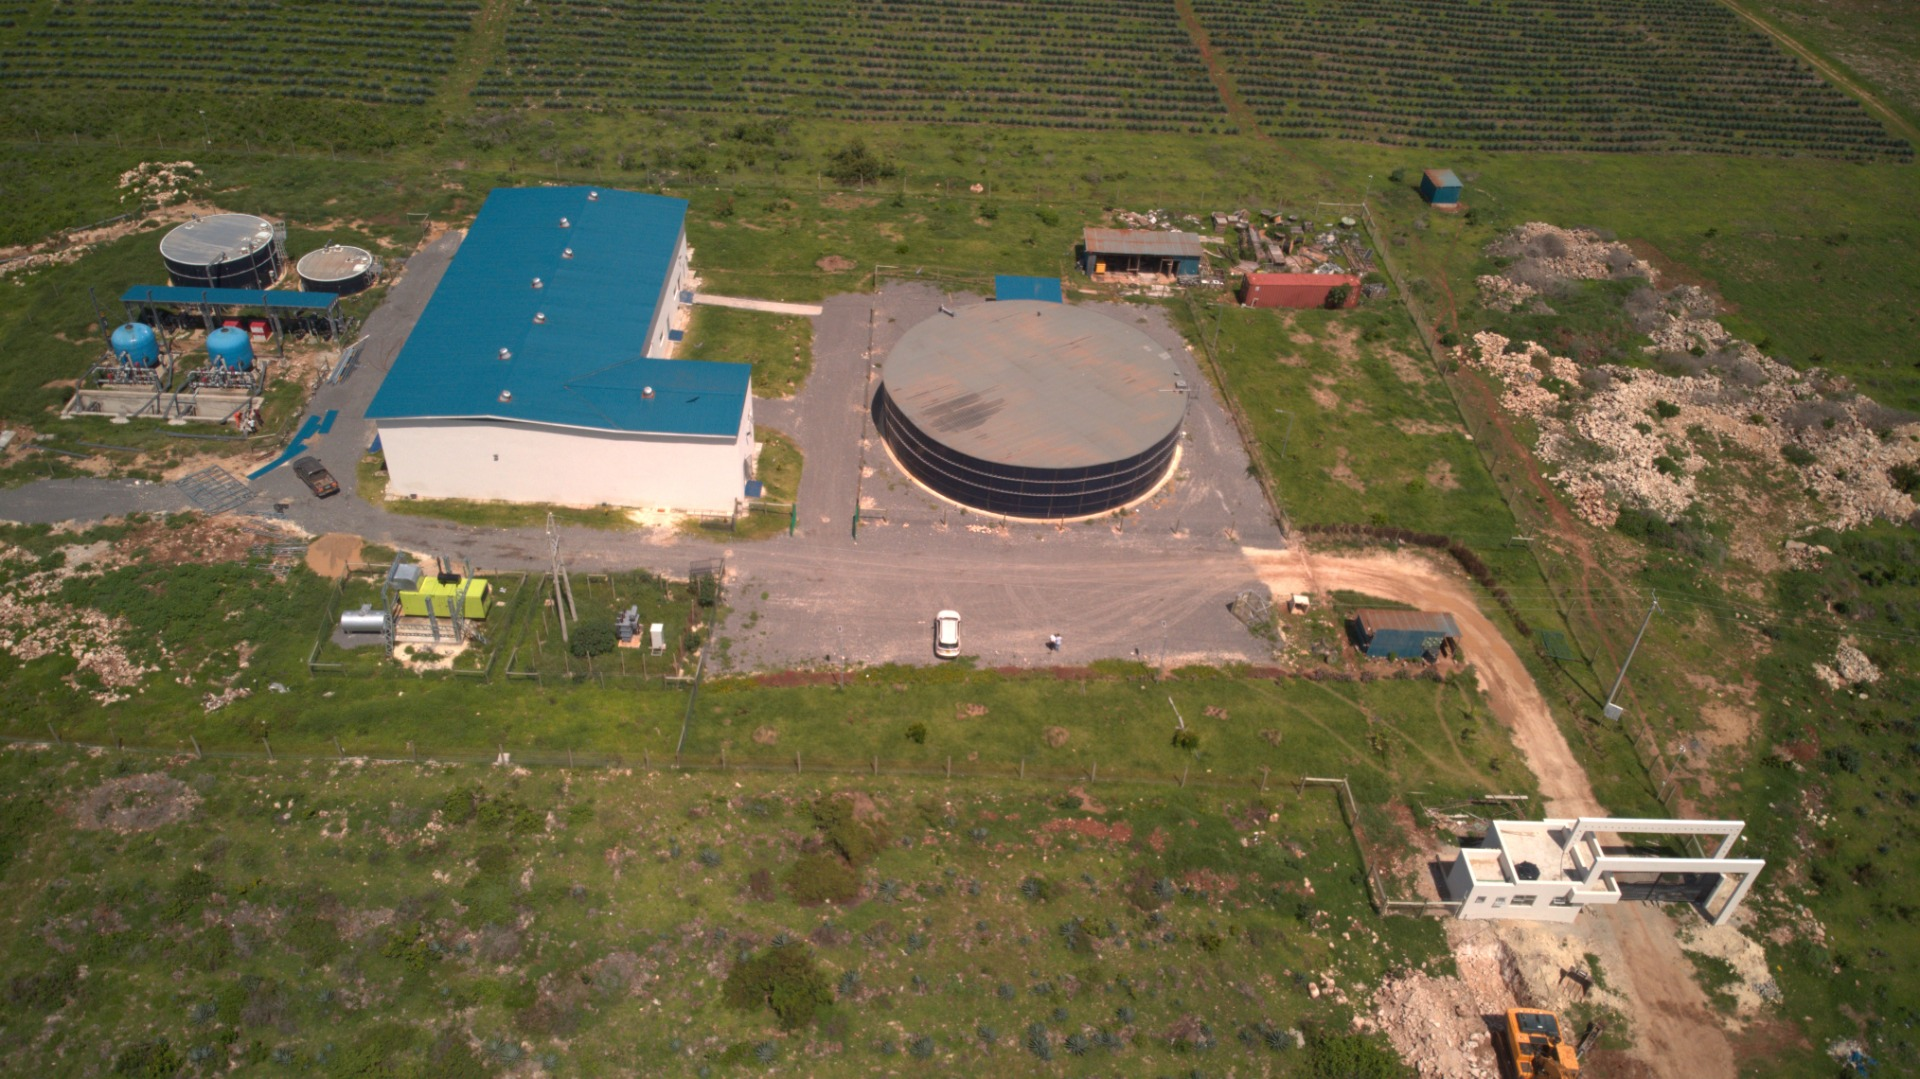 https://vipingodevelopment.com/wp-content/themes/vipingo/images/developers_industrial_park.jpg